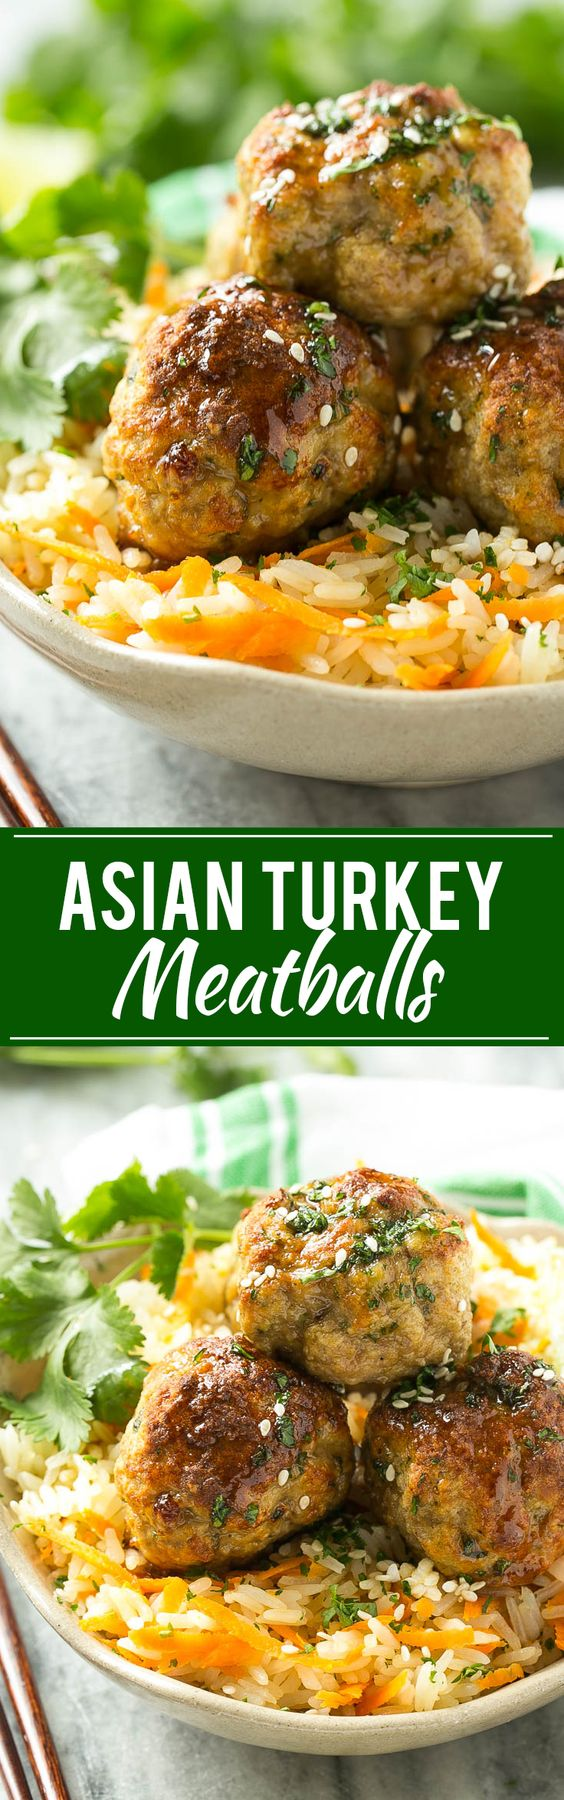 Baked Asian Turkey Meatballs & Carrot Rice | Recipe | Turkey Meatballs ...